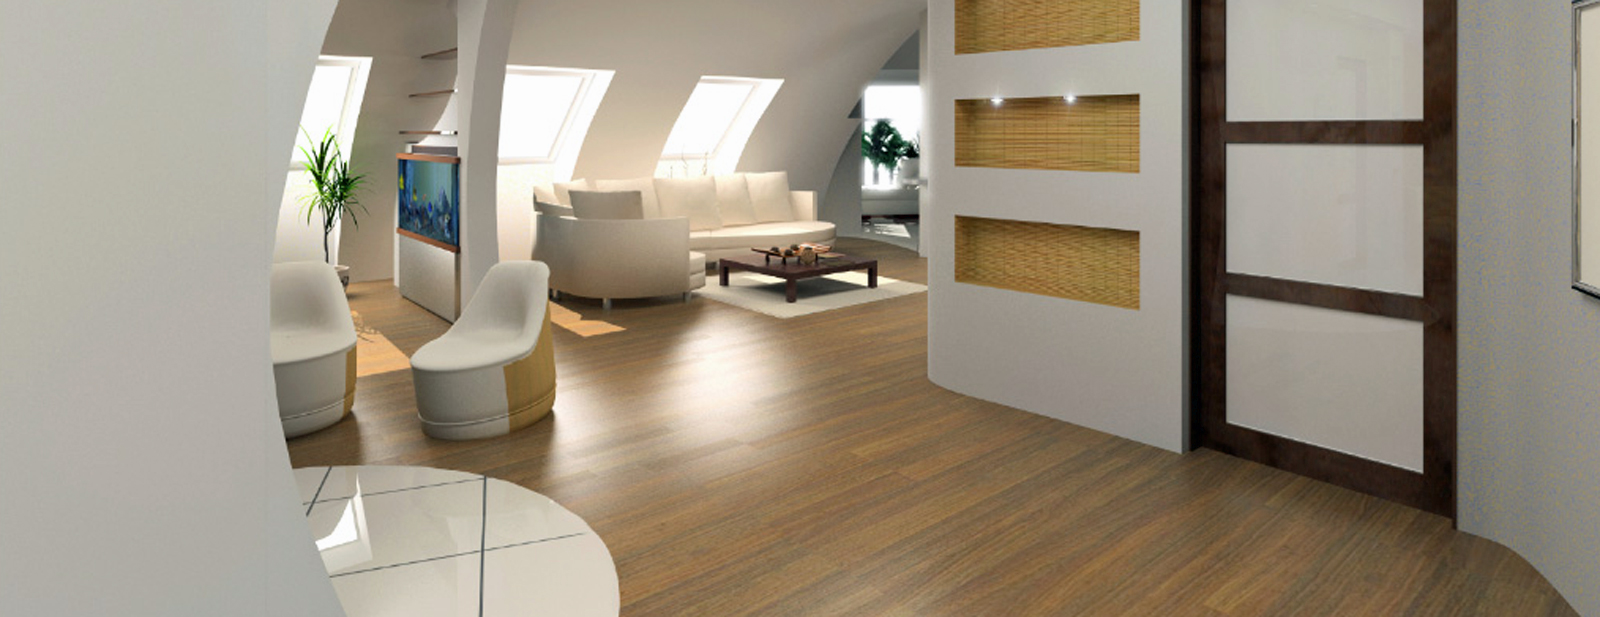 How durable is laminate flooring - Laminate Flooring Experts And Installation Let Us Help You Choose The Best Durable Laminate Floor For Your Home Decorating Project